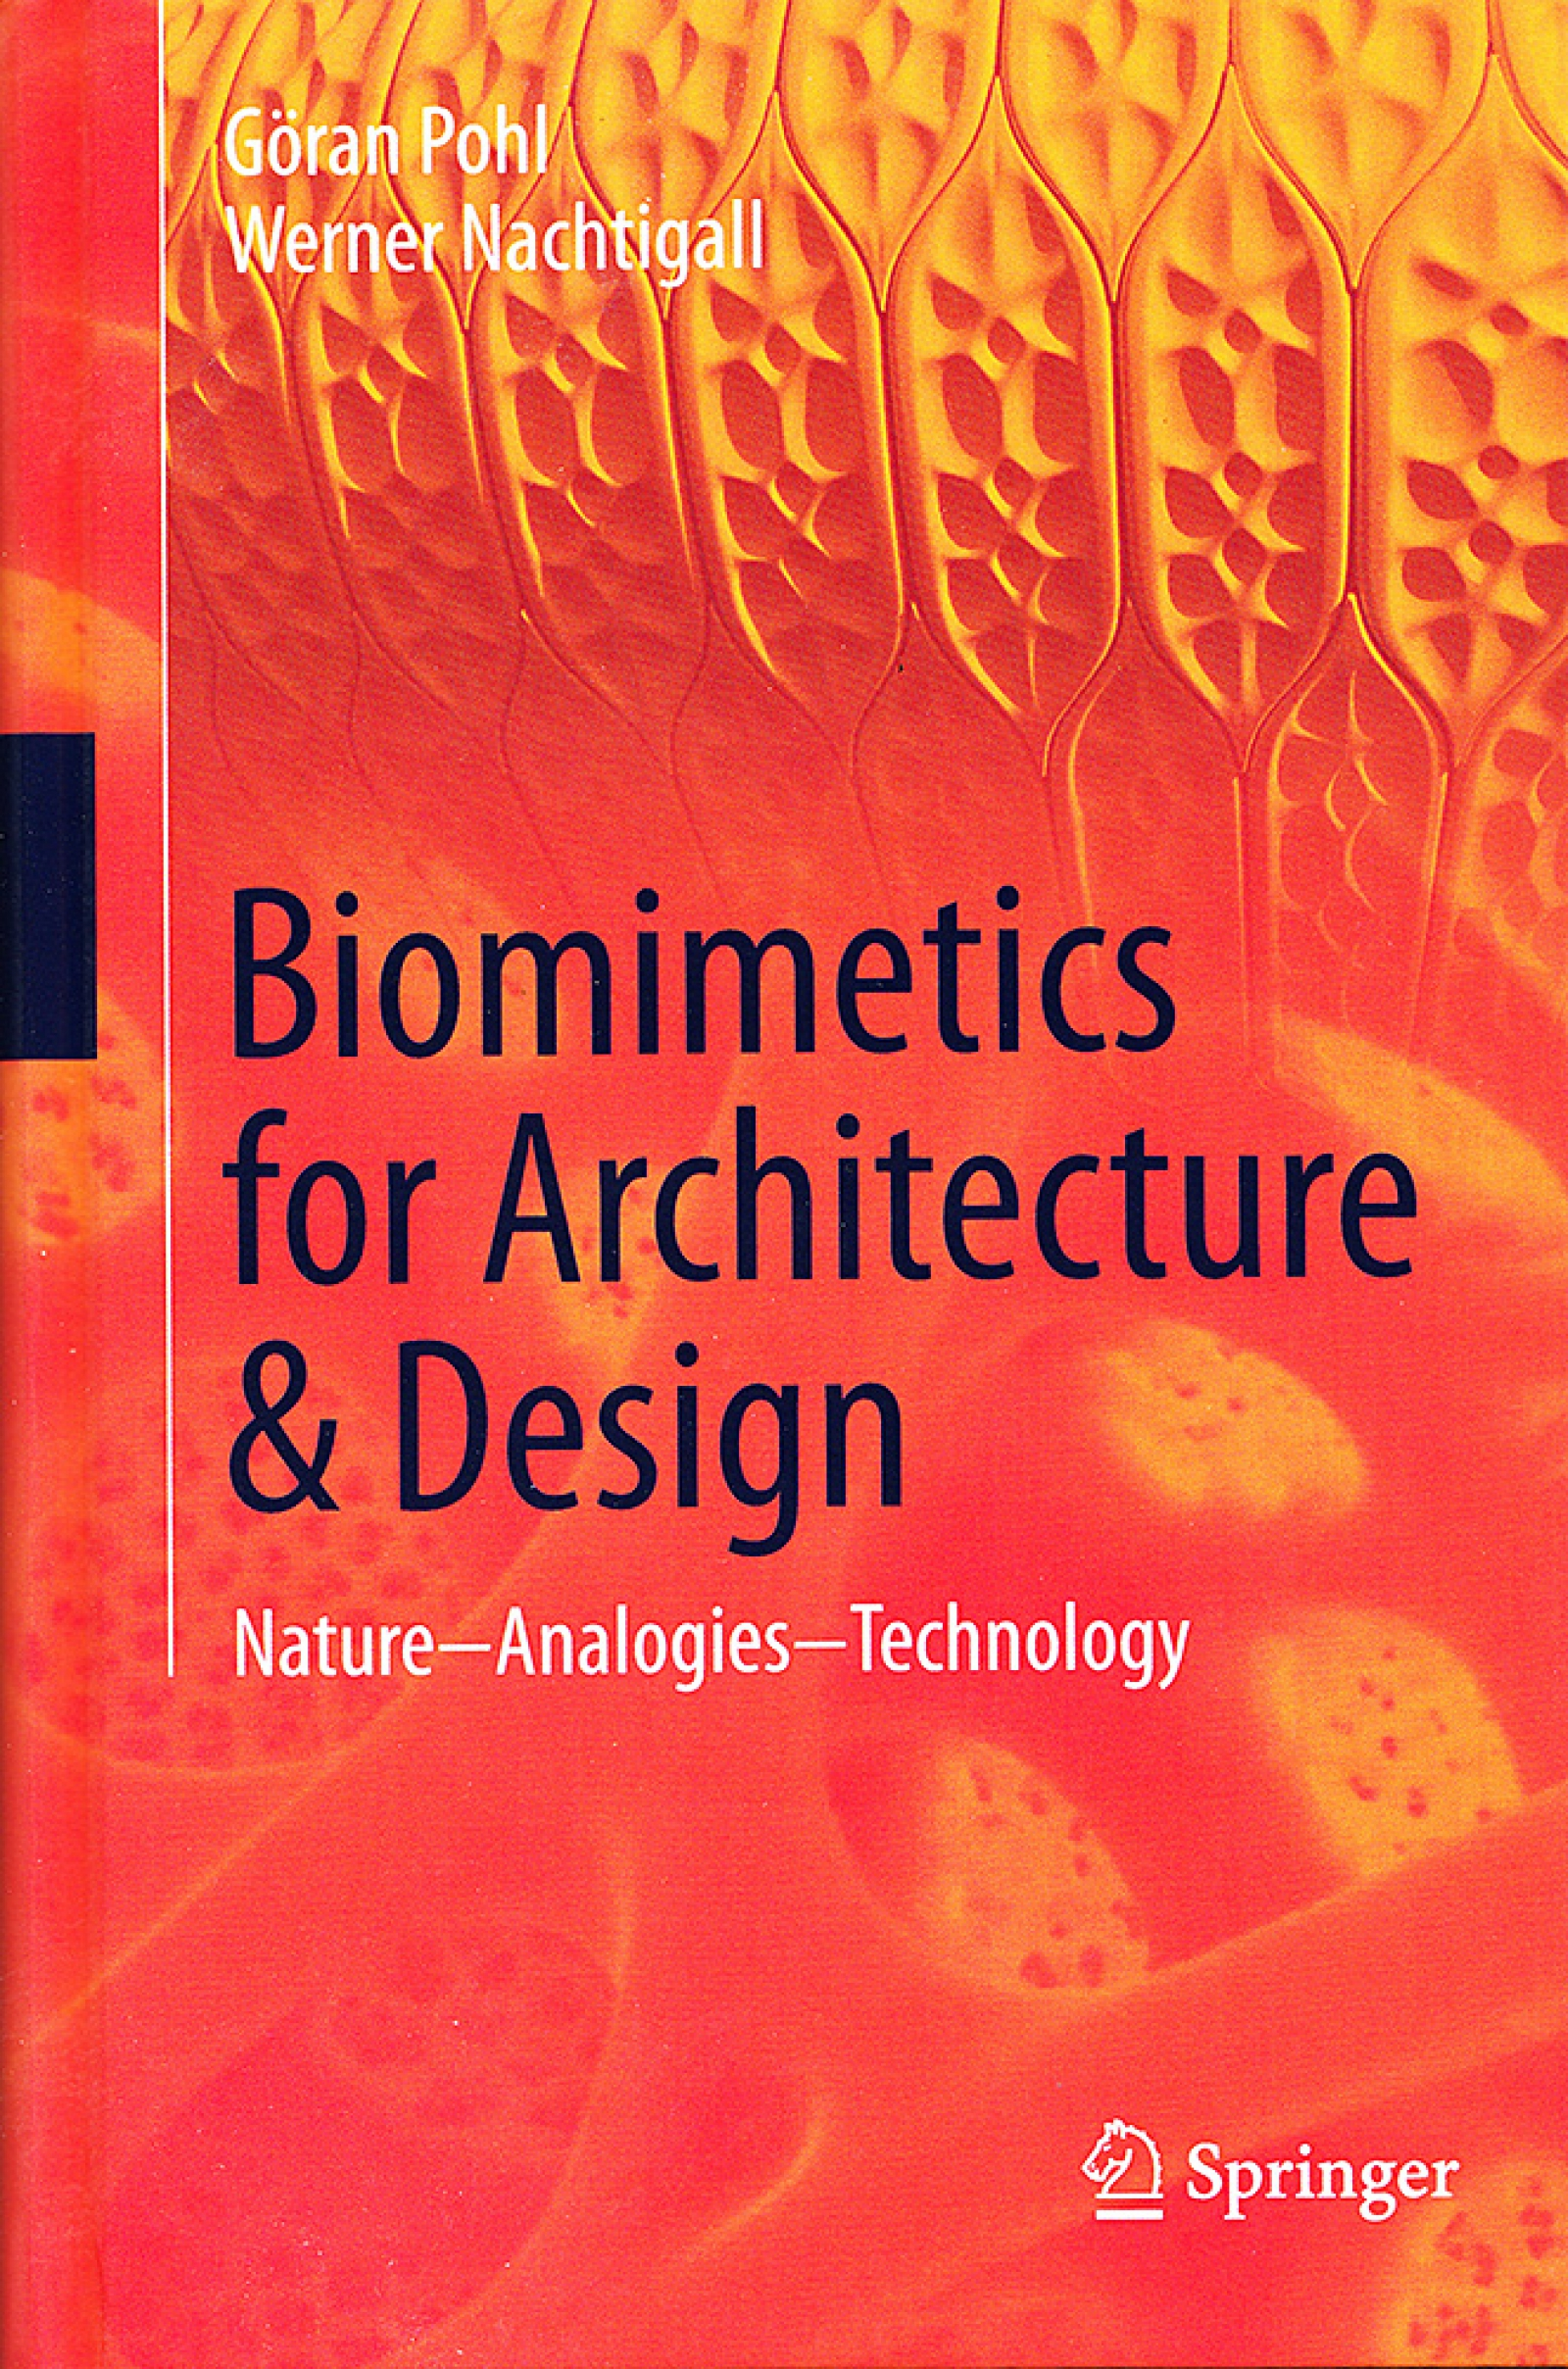 Biomimetics for Architecture & Design, Nature - Analogies - Technology